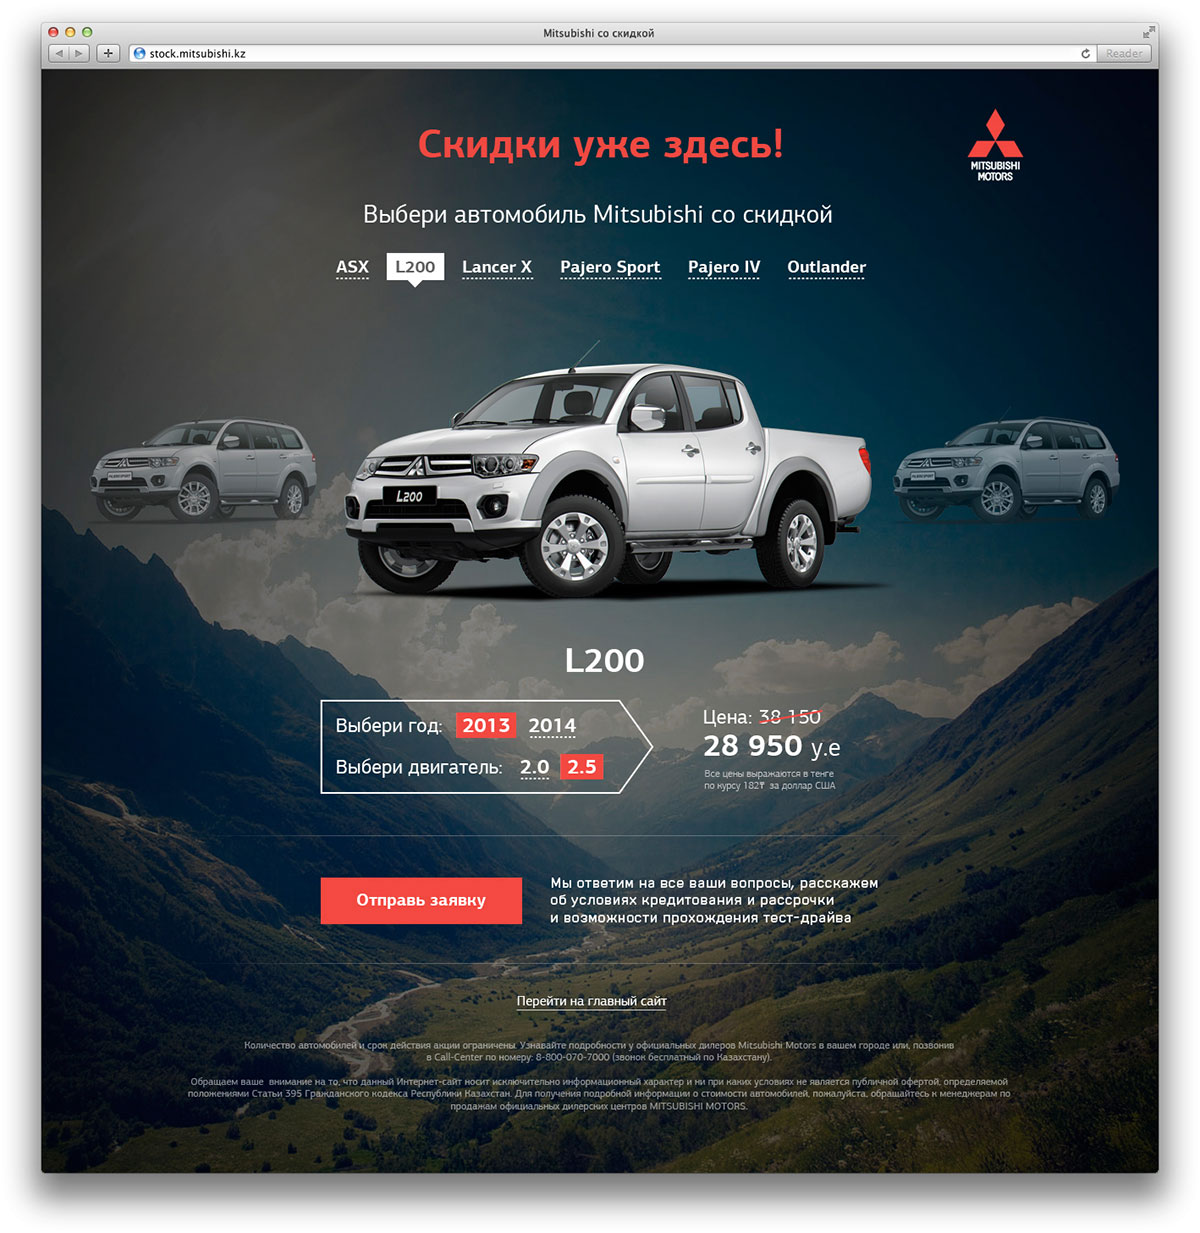 The landing page told about discounts and offered to sign in to the test drive